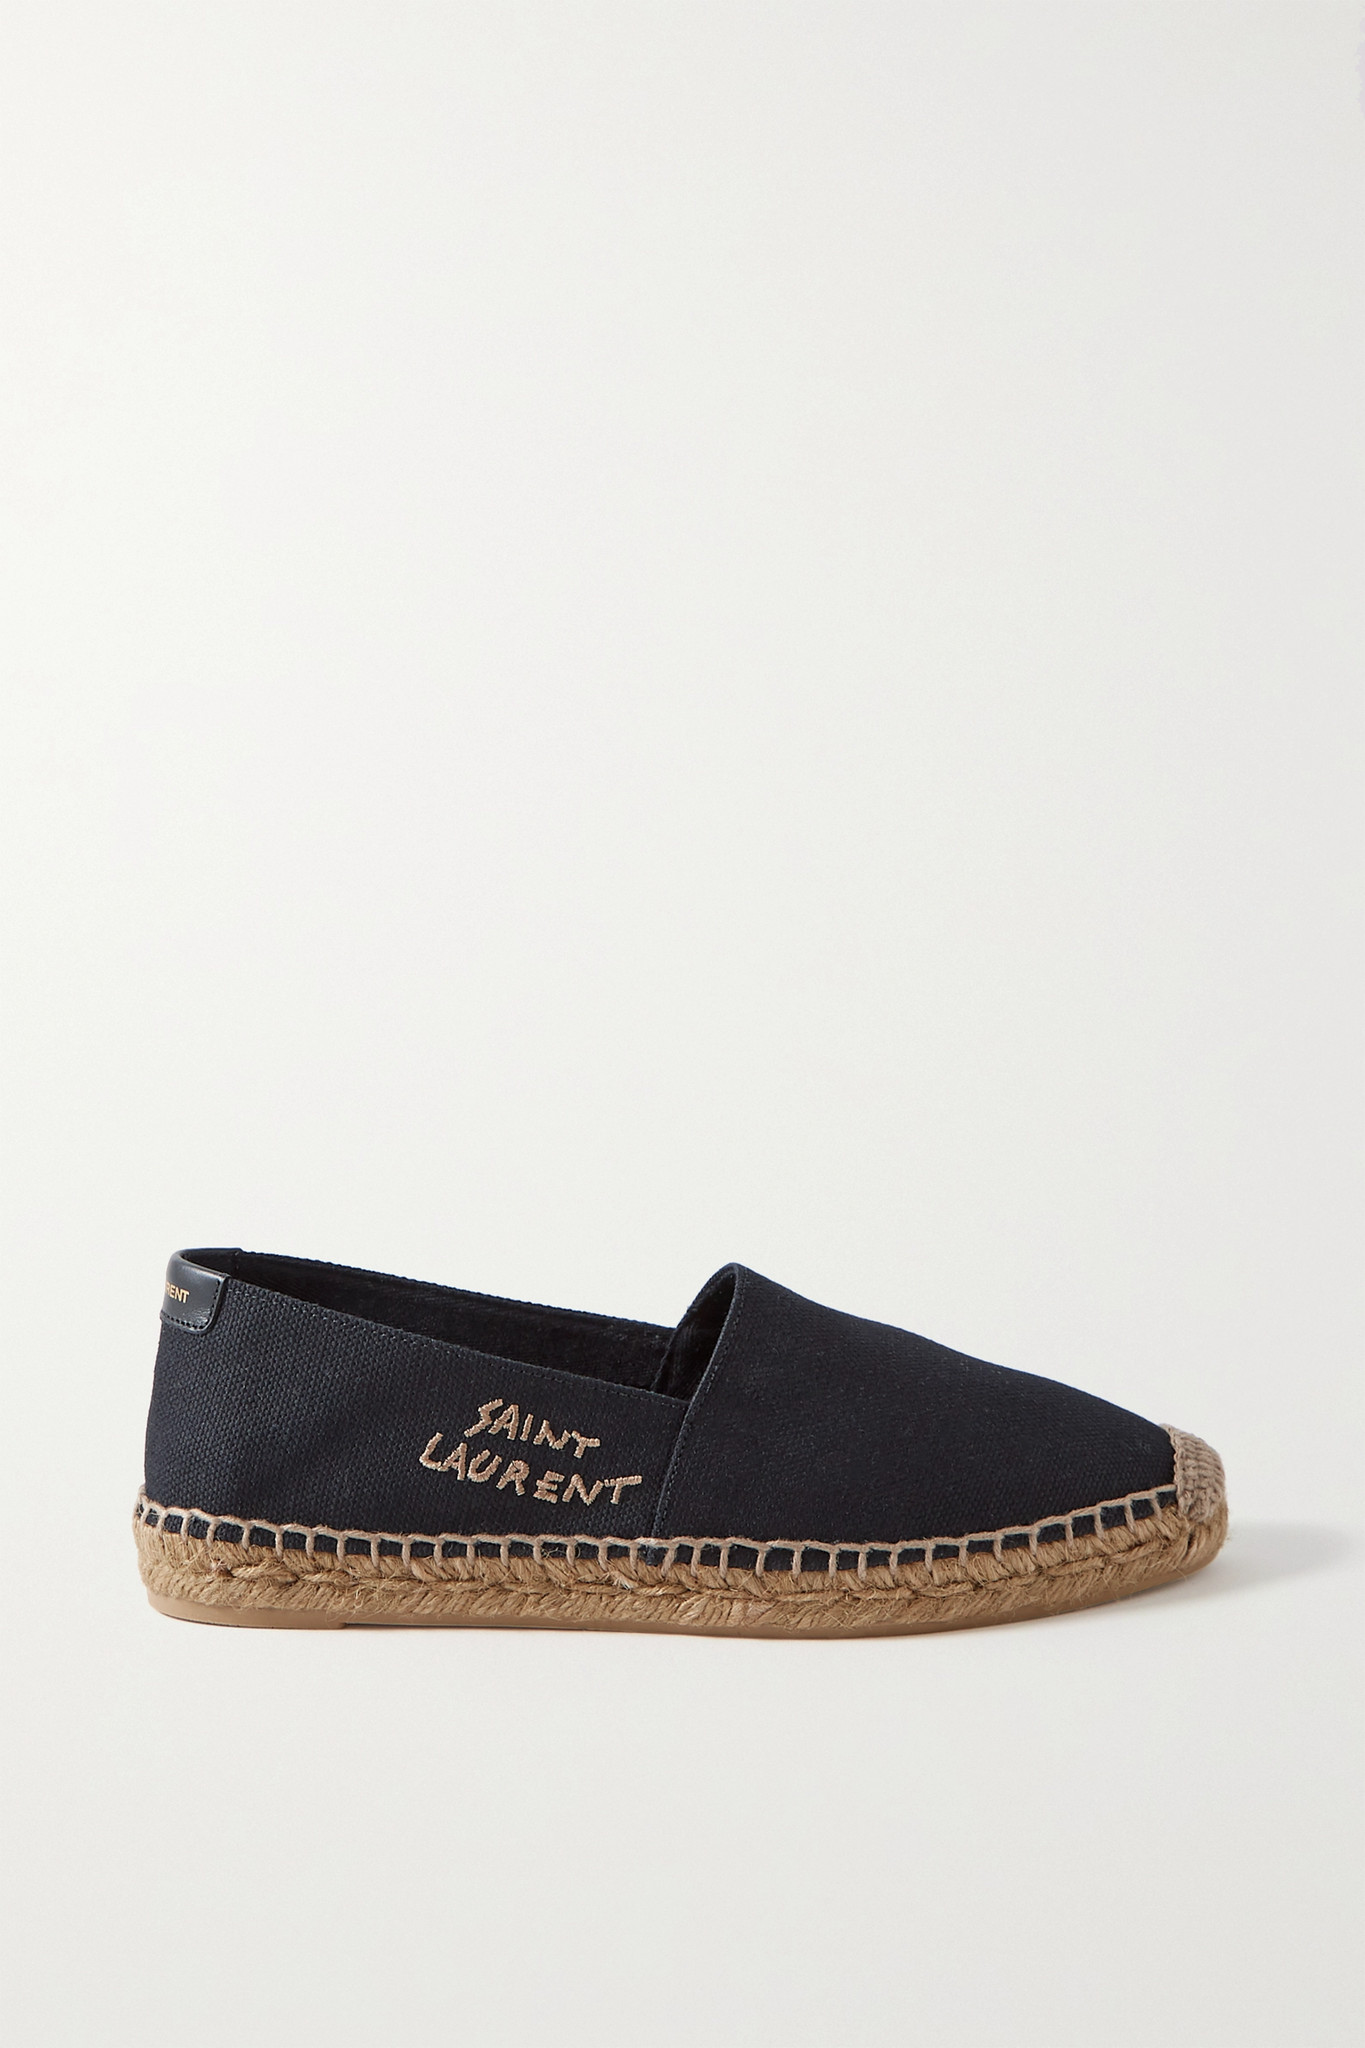 SAINT LAURENT - Logo-embroidered Canvas Espadrilles - Black - IT38